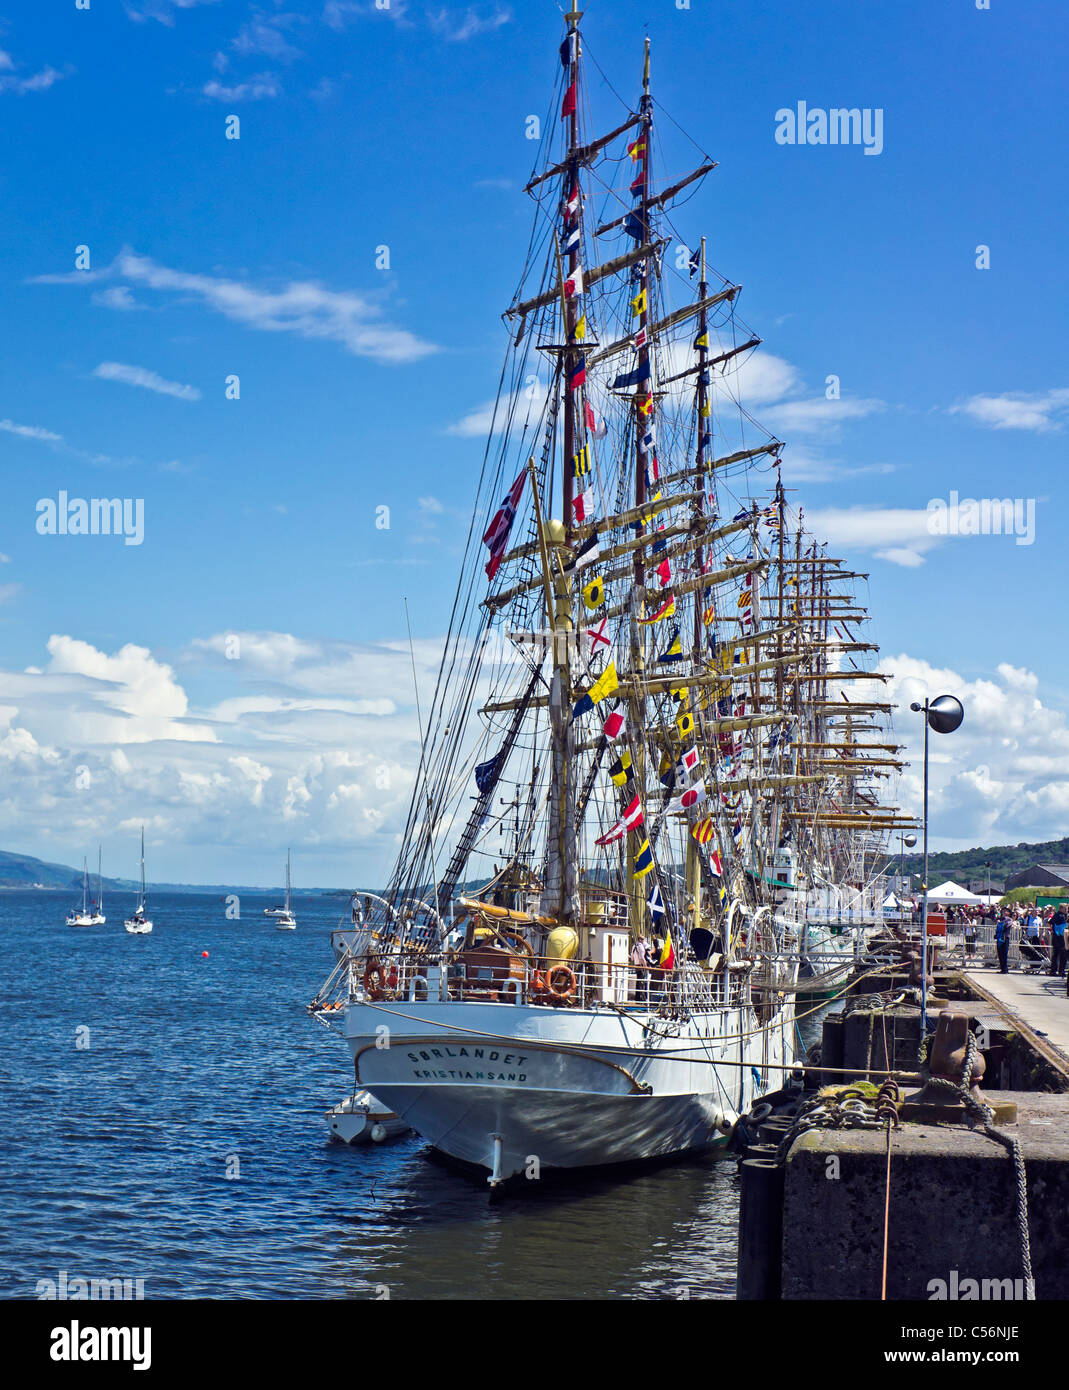 Norwegian Sailing ship Soerlandet participating in the Tall Ships Races 2011 moored in Greenock Great harbour Scotland - Stock Image